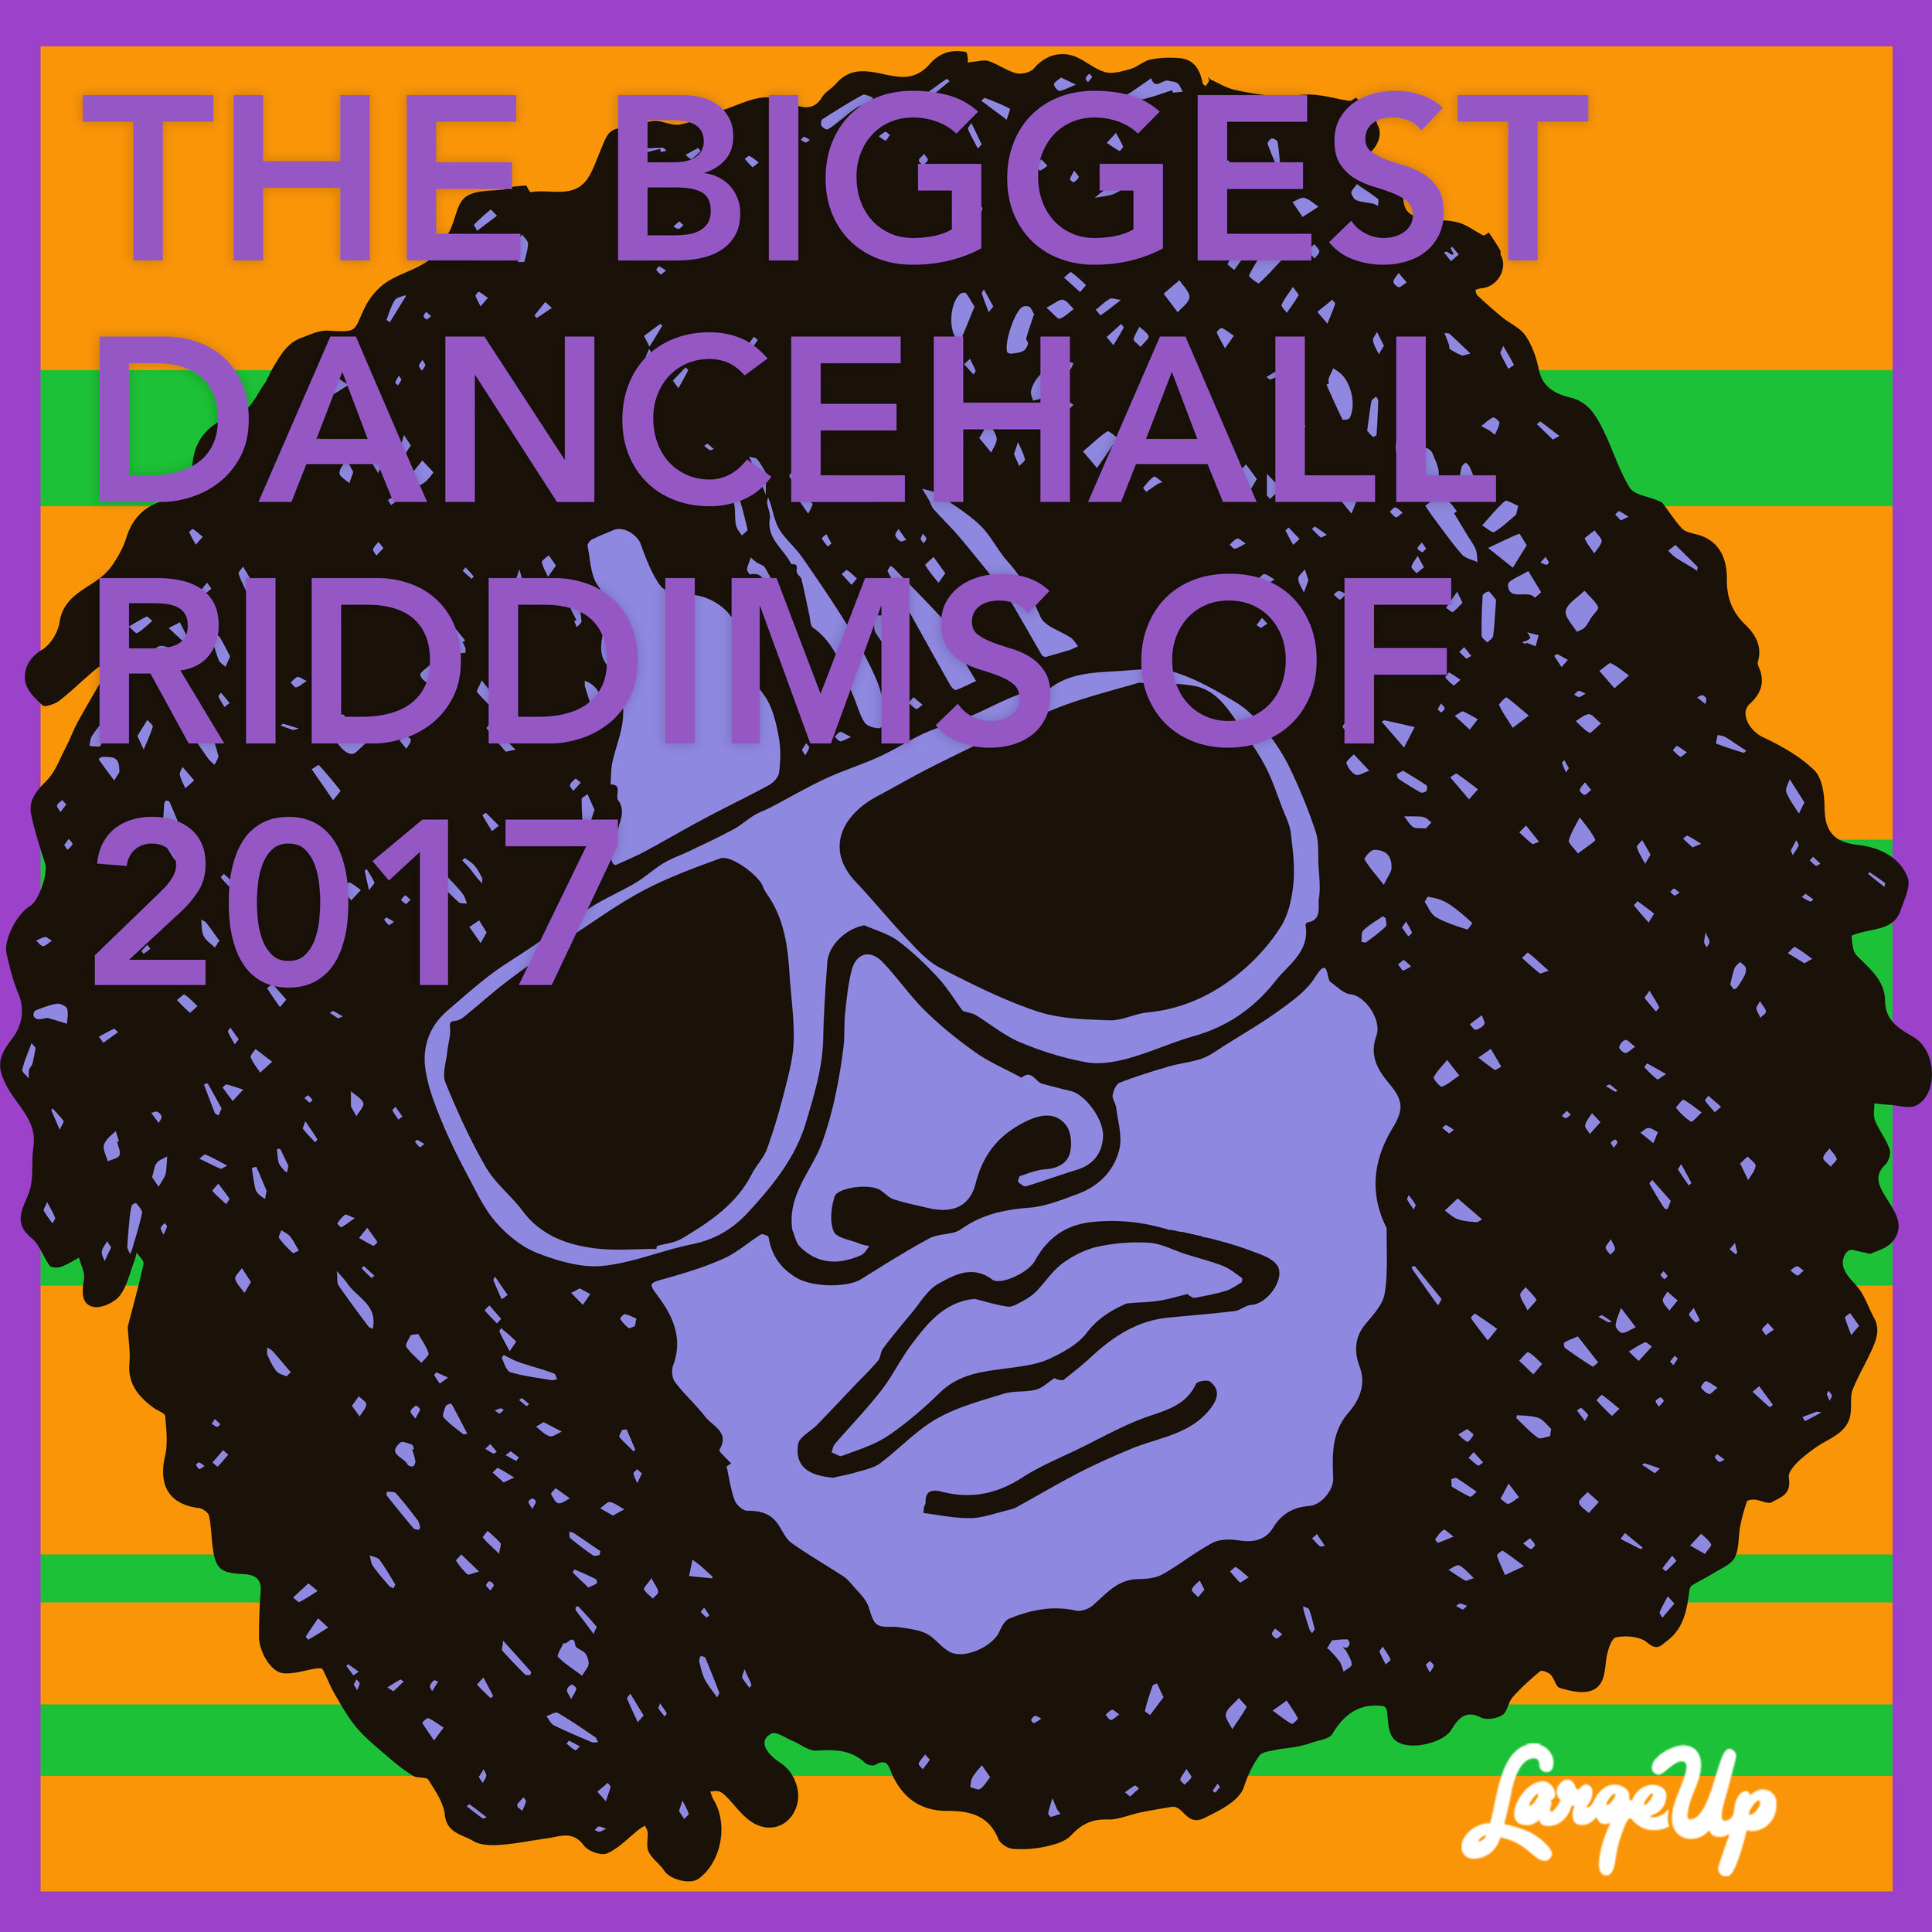 LargeUp.com - The Best Dancehall Riddims of 2017